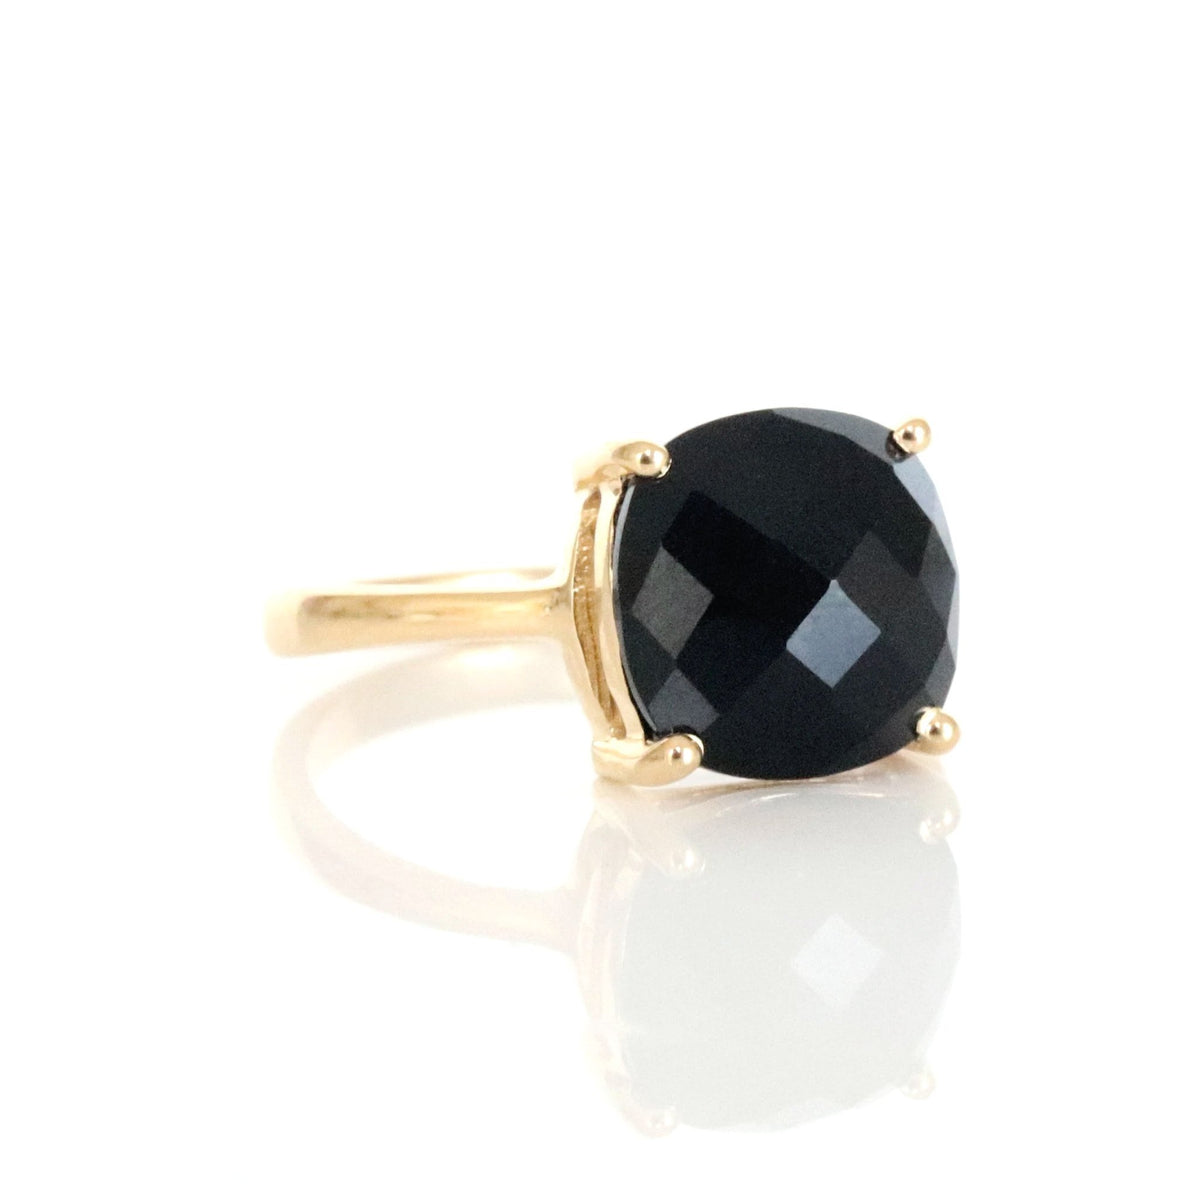 GLEE RING - BLACK ONYX & GOLD - SO PRETTY CARA COTTER